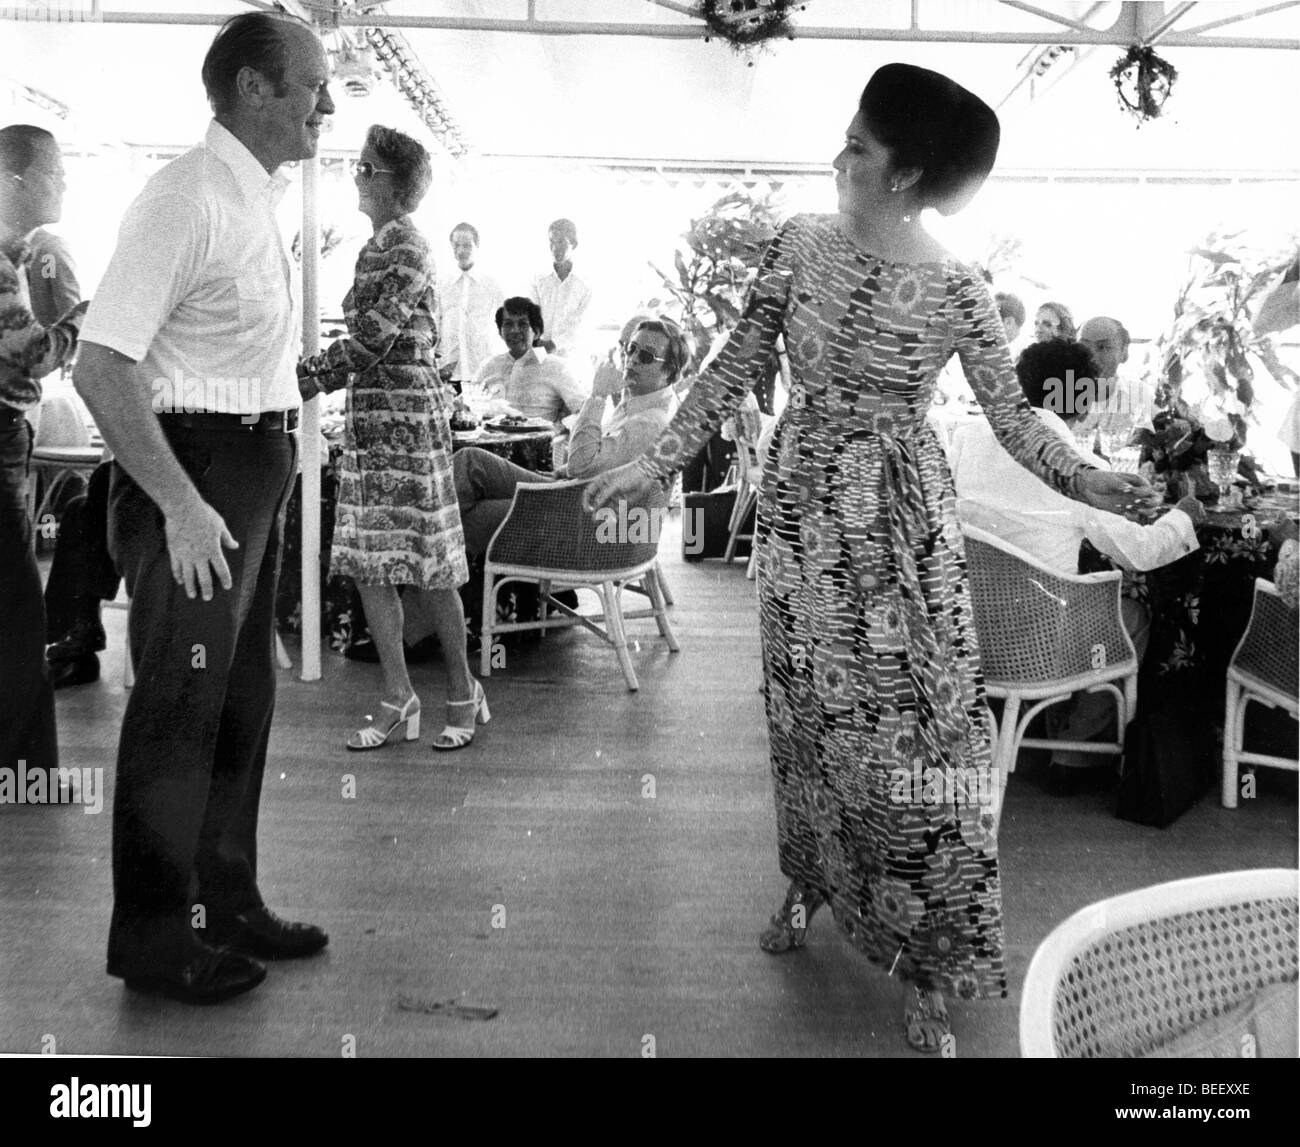 Marcos Black and White Stock Photos & Images - Alamy